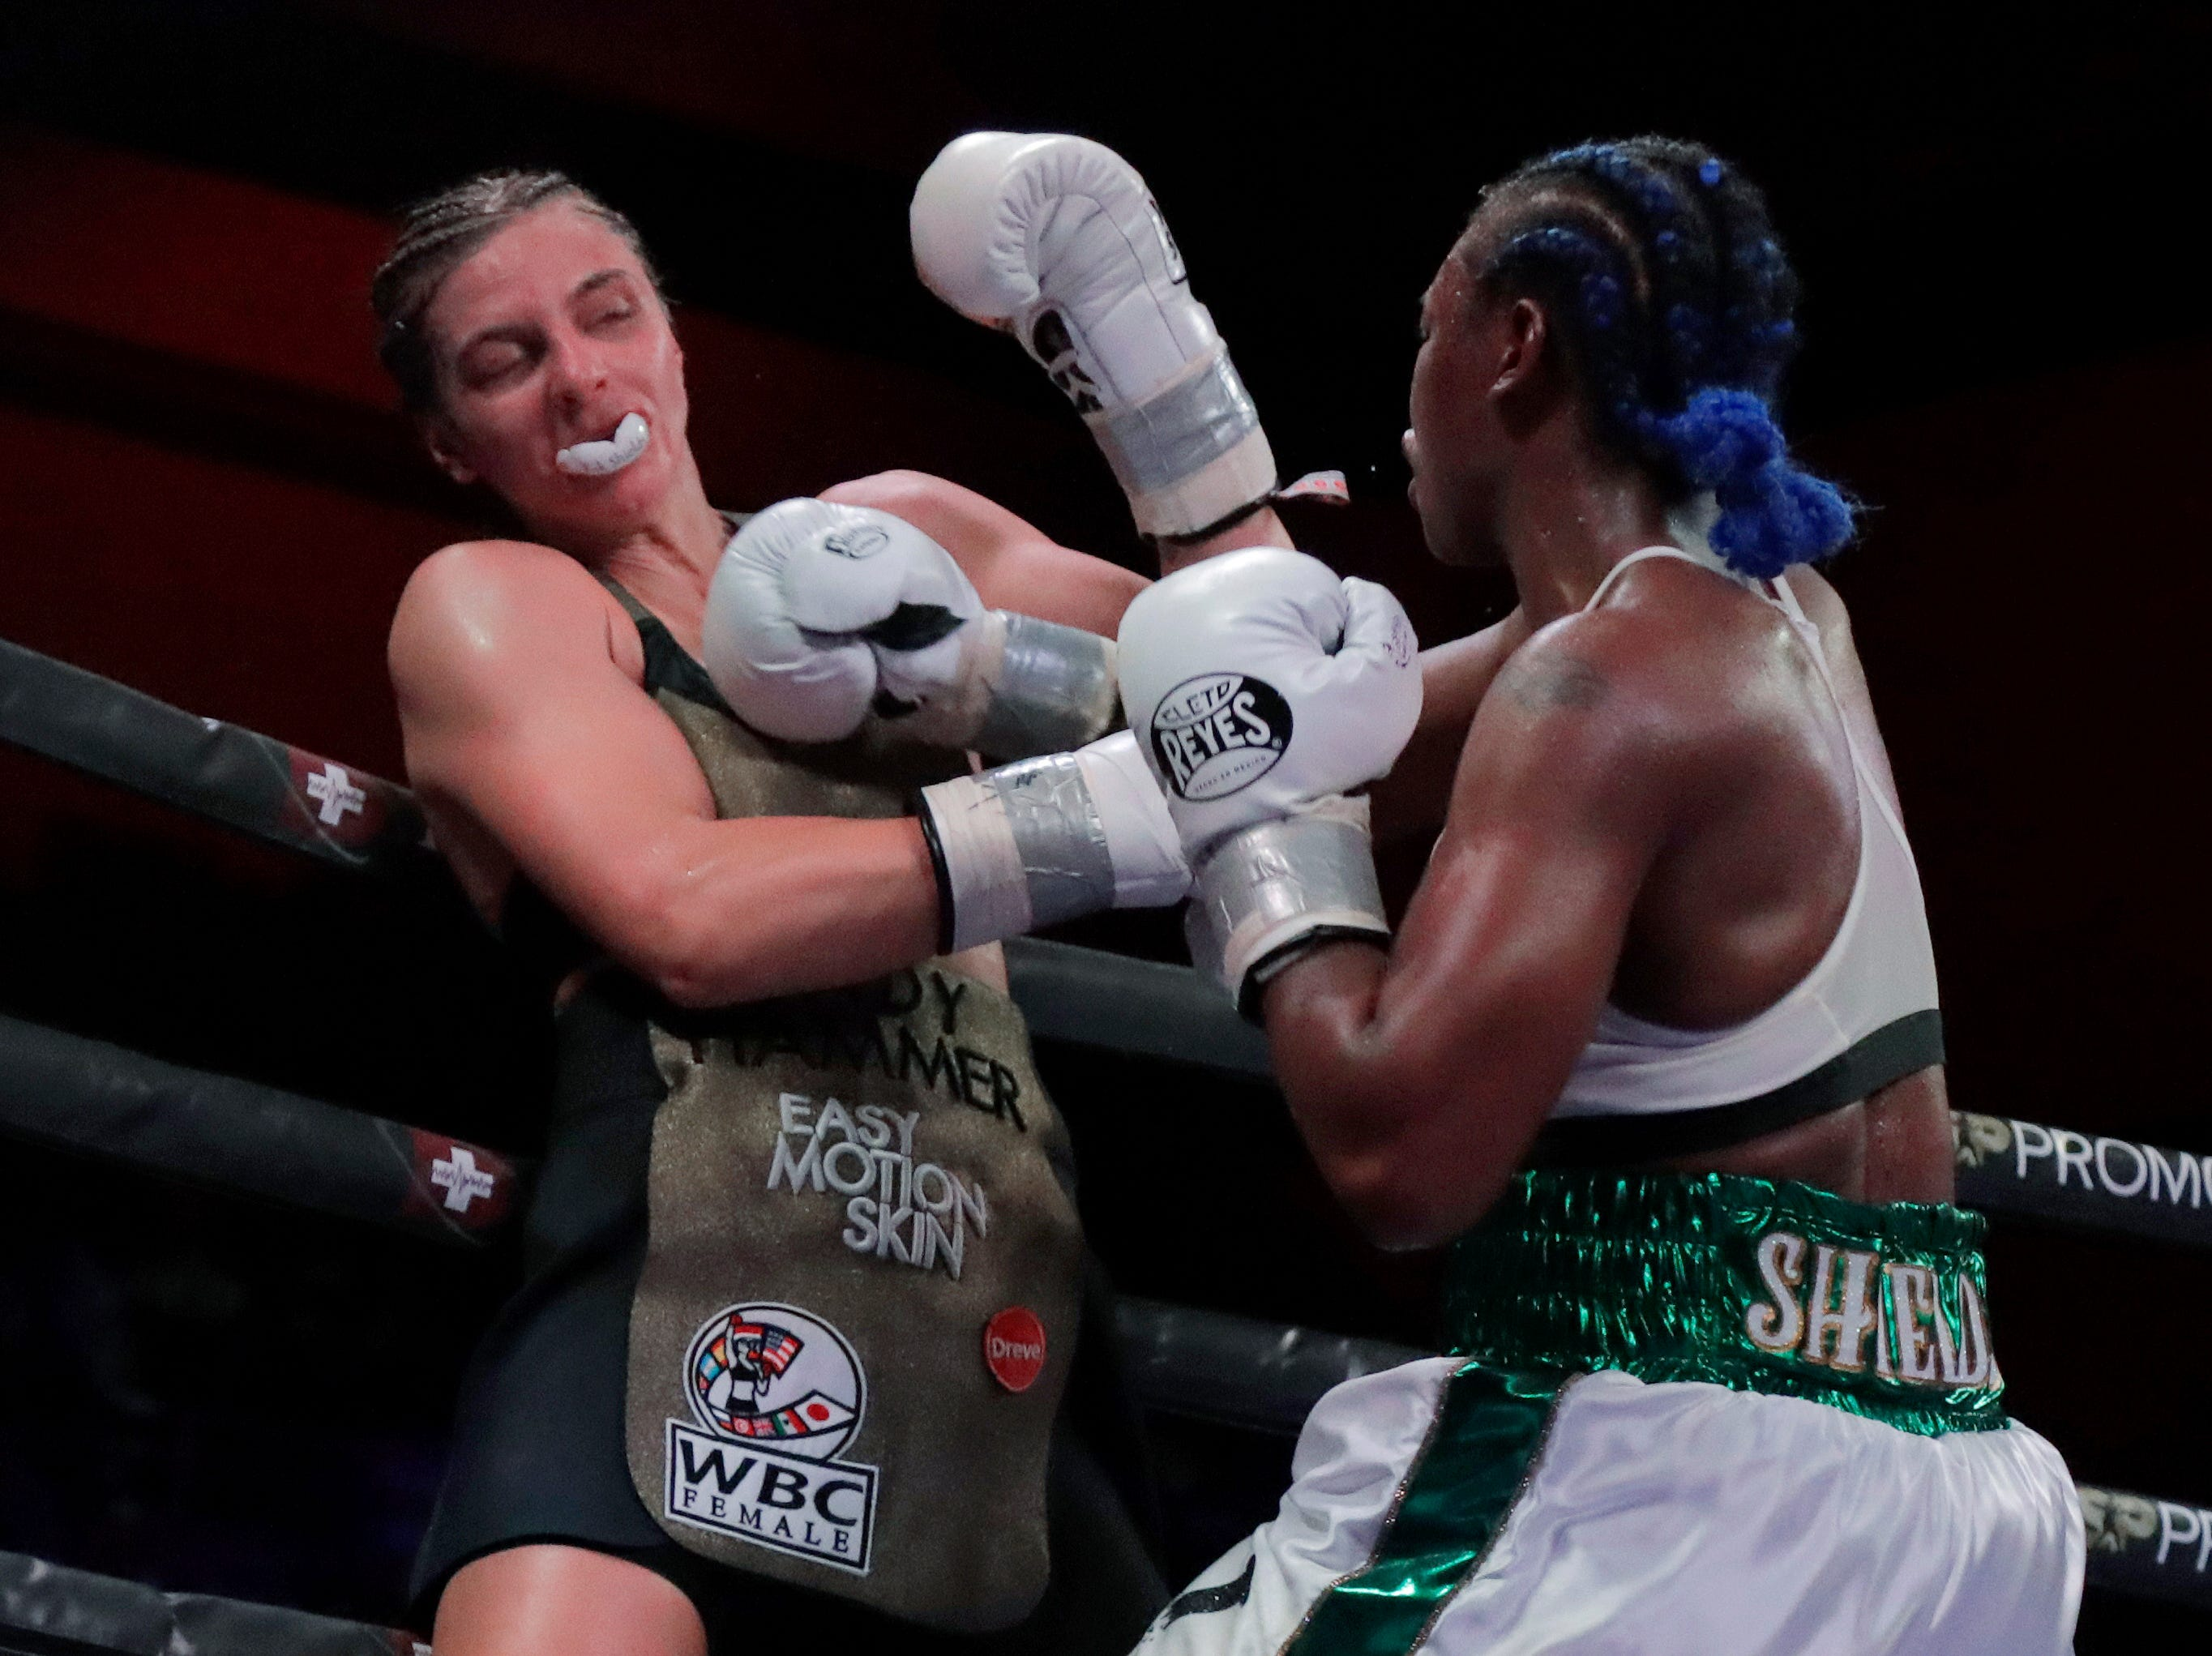 Claressa Shields, right, punches the mouthpiece out of Christina Hammer's mouth during the eighth round of the women's middleweight championship boxing bout Saturday, April 13, 2019, in Atlantic City, N.J. Shields won by unanimous decision.